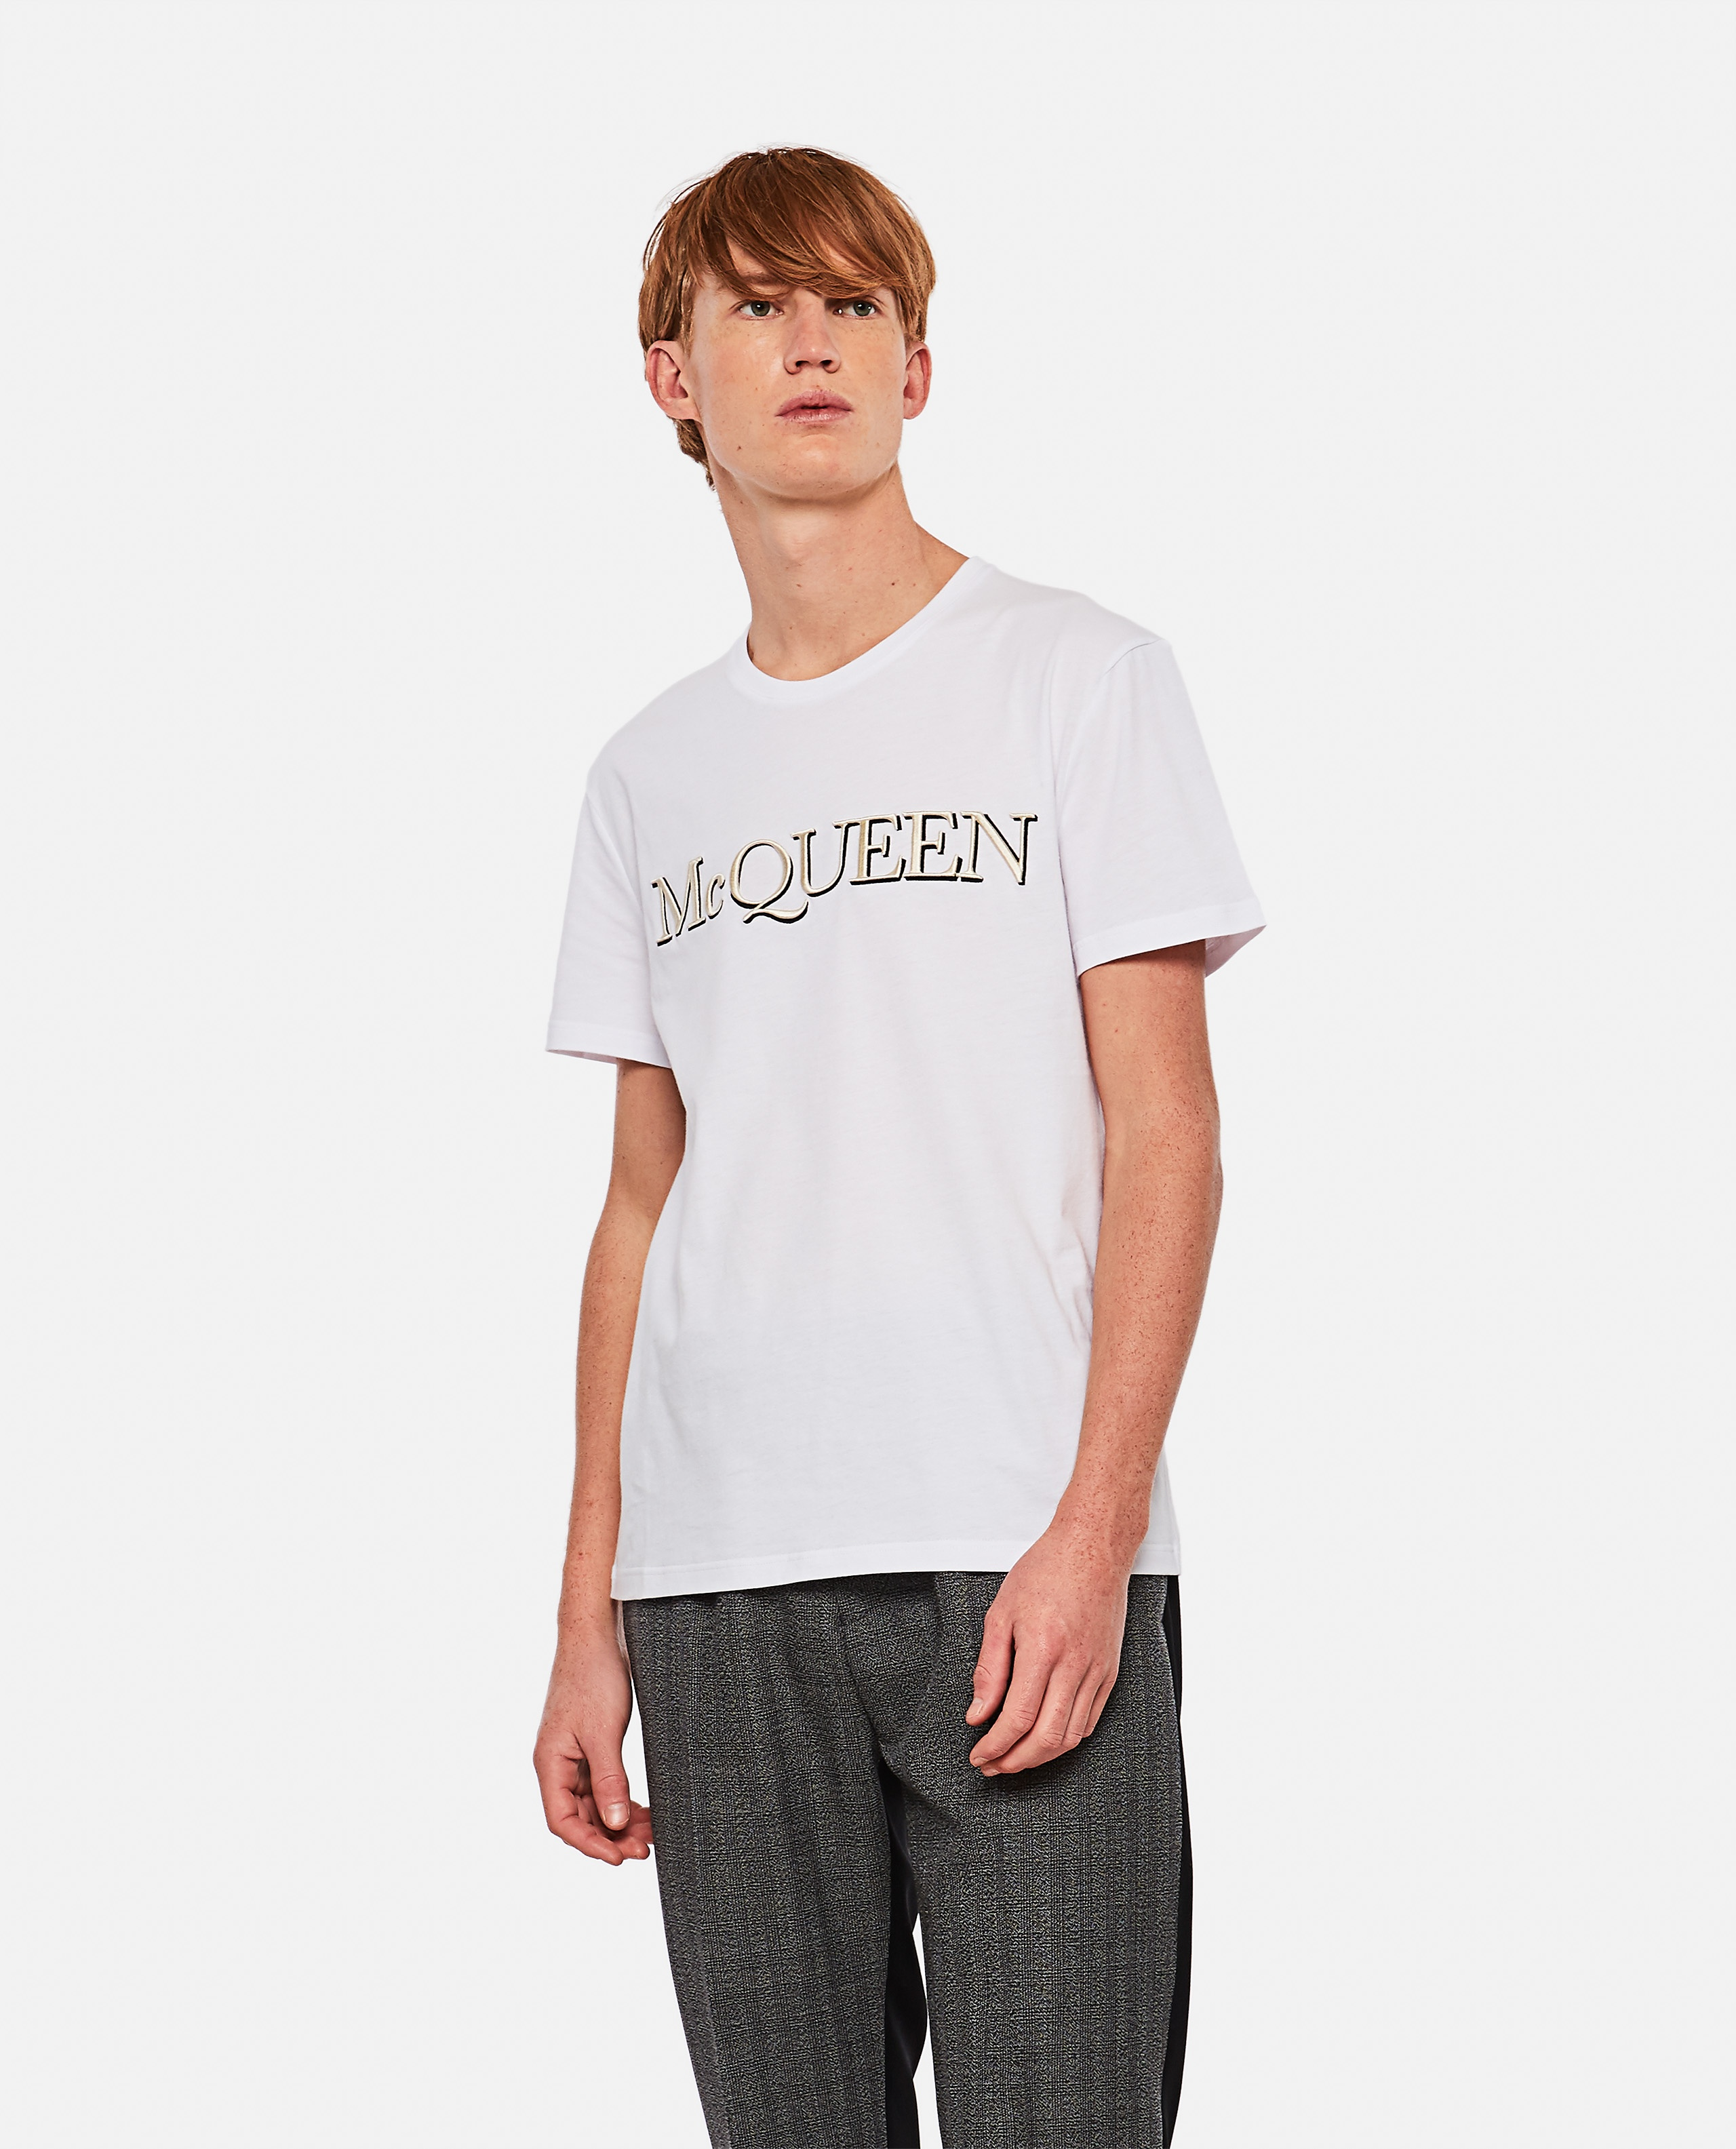 T-shirt with embroidery Men Alexander McQueen 000291000042843 1